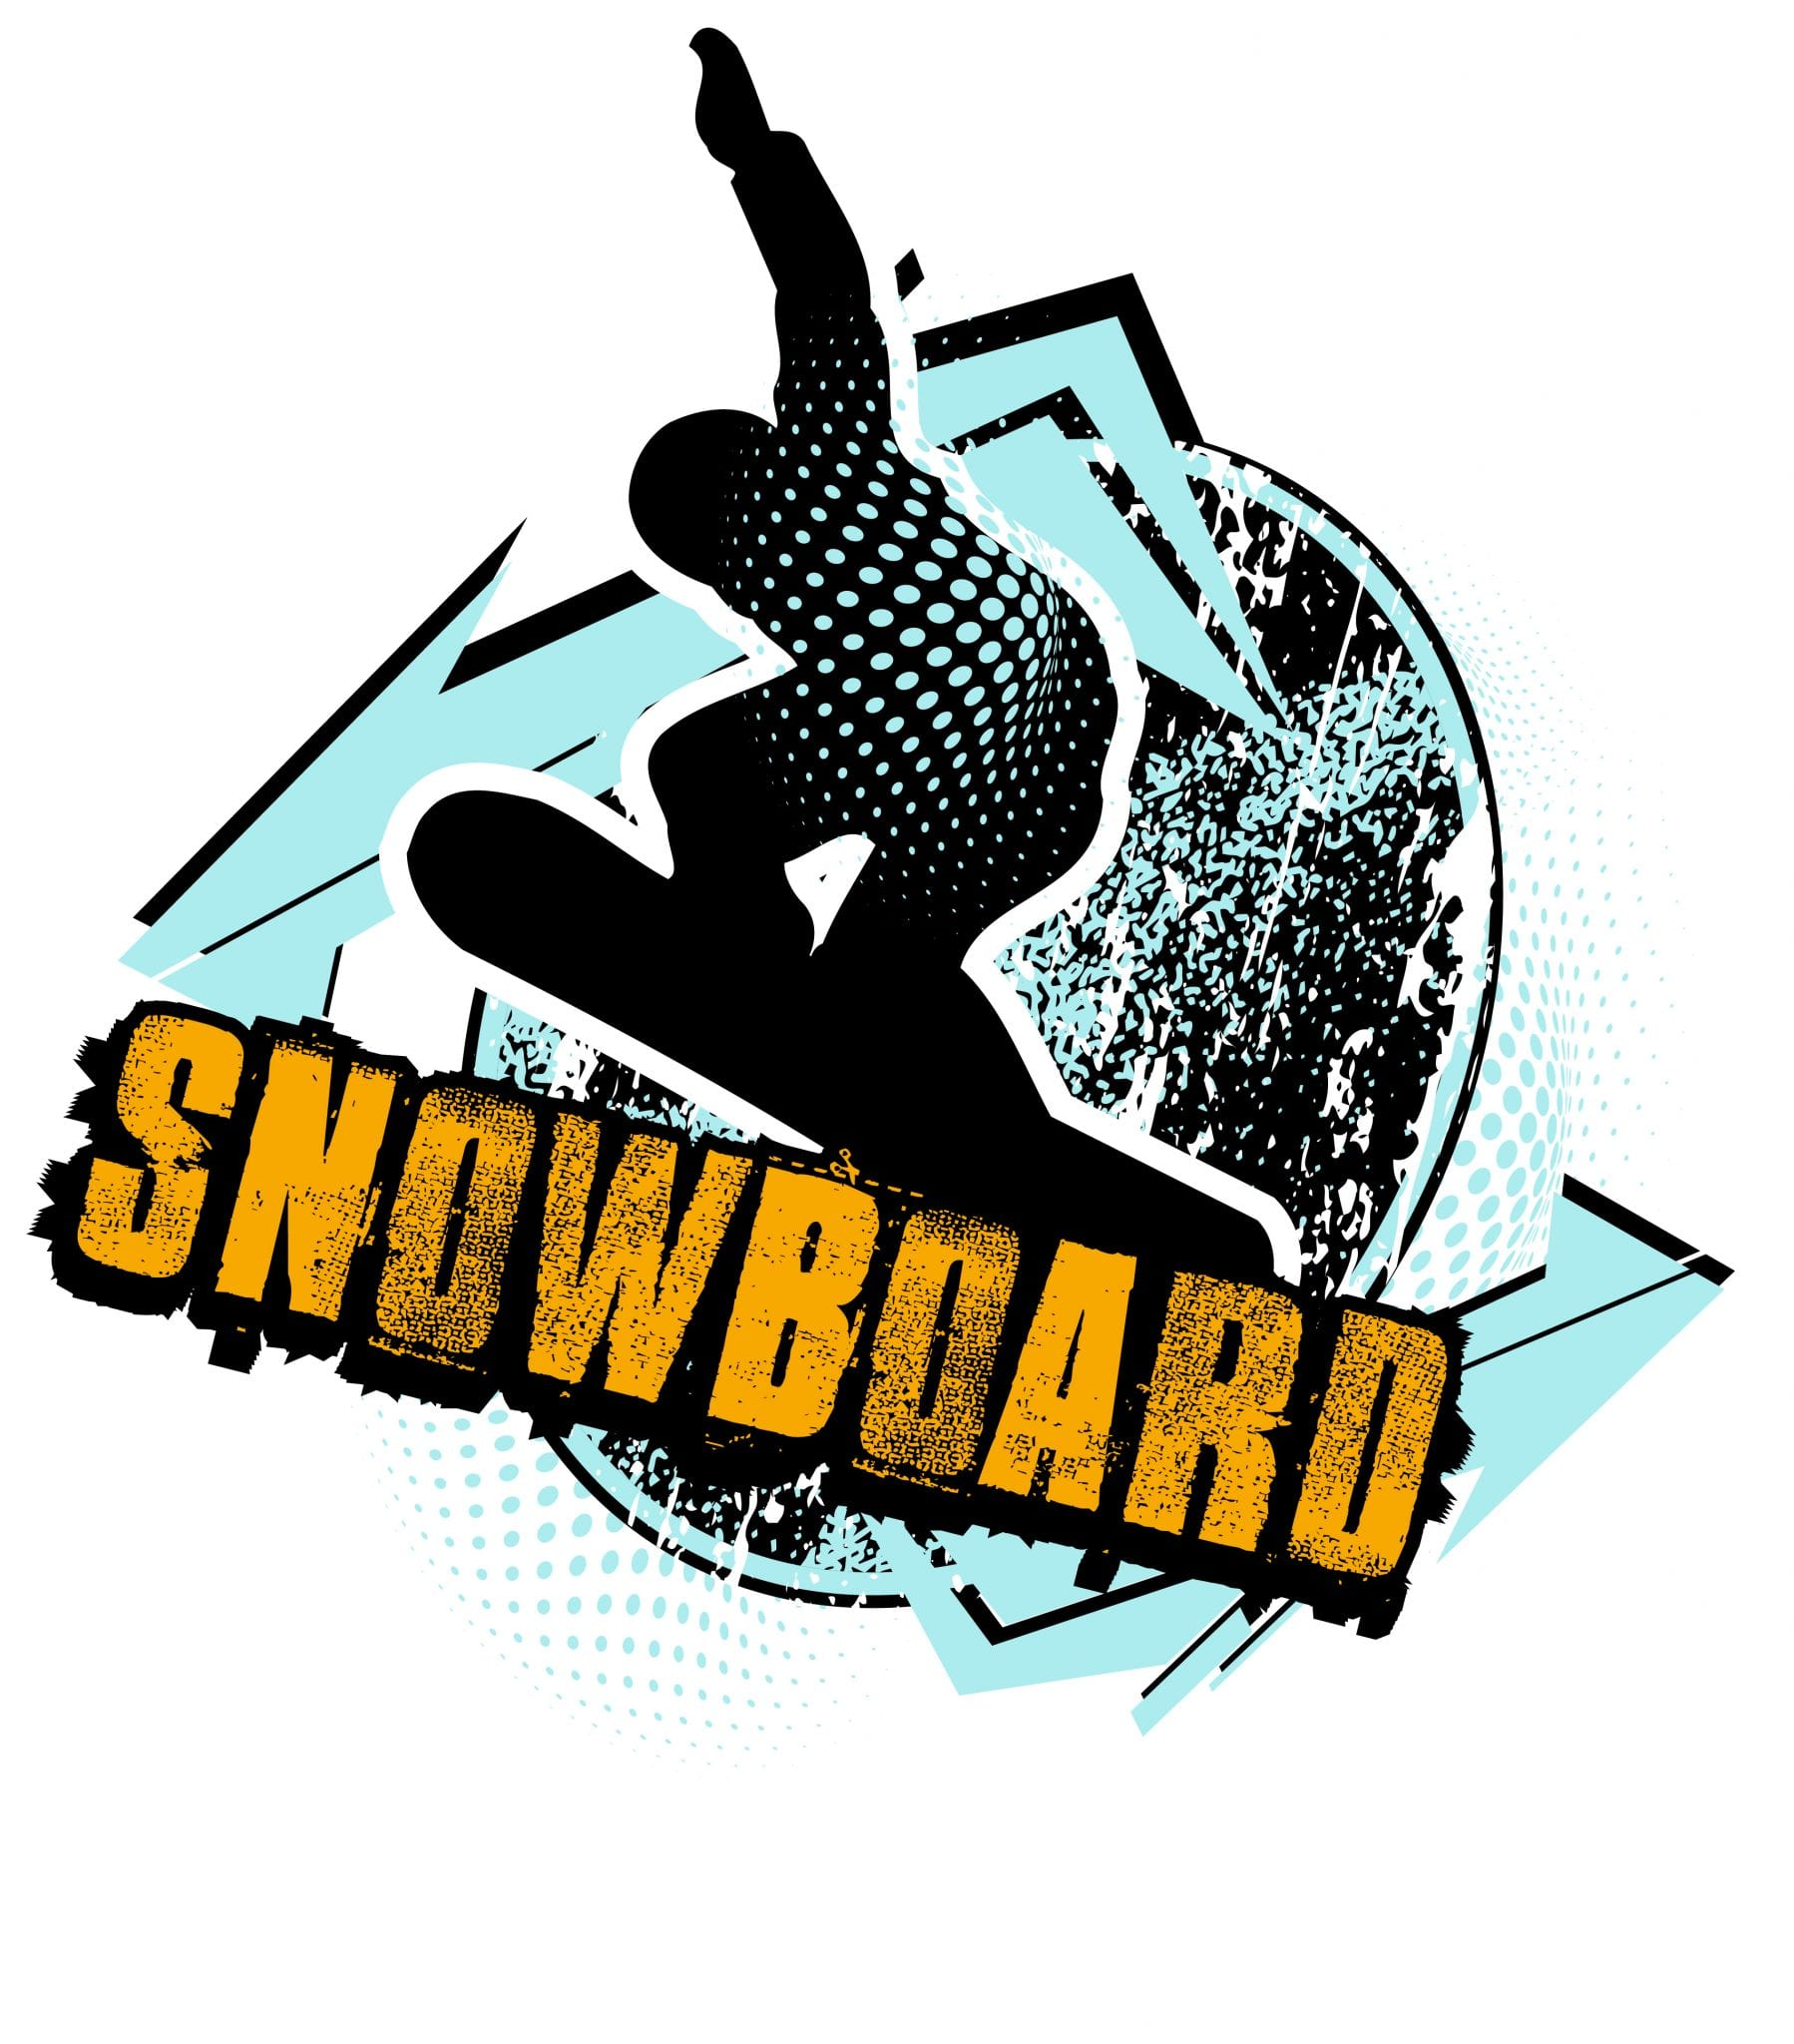 SNOWBOARD T-shirt vector logo design for print